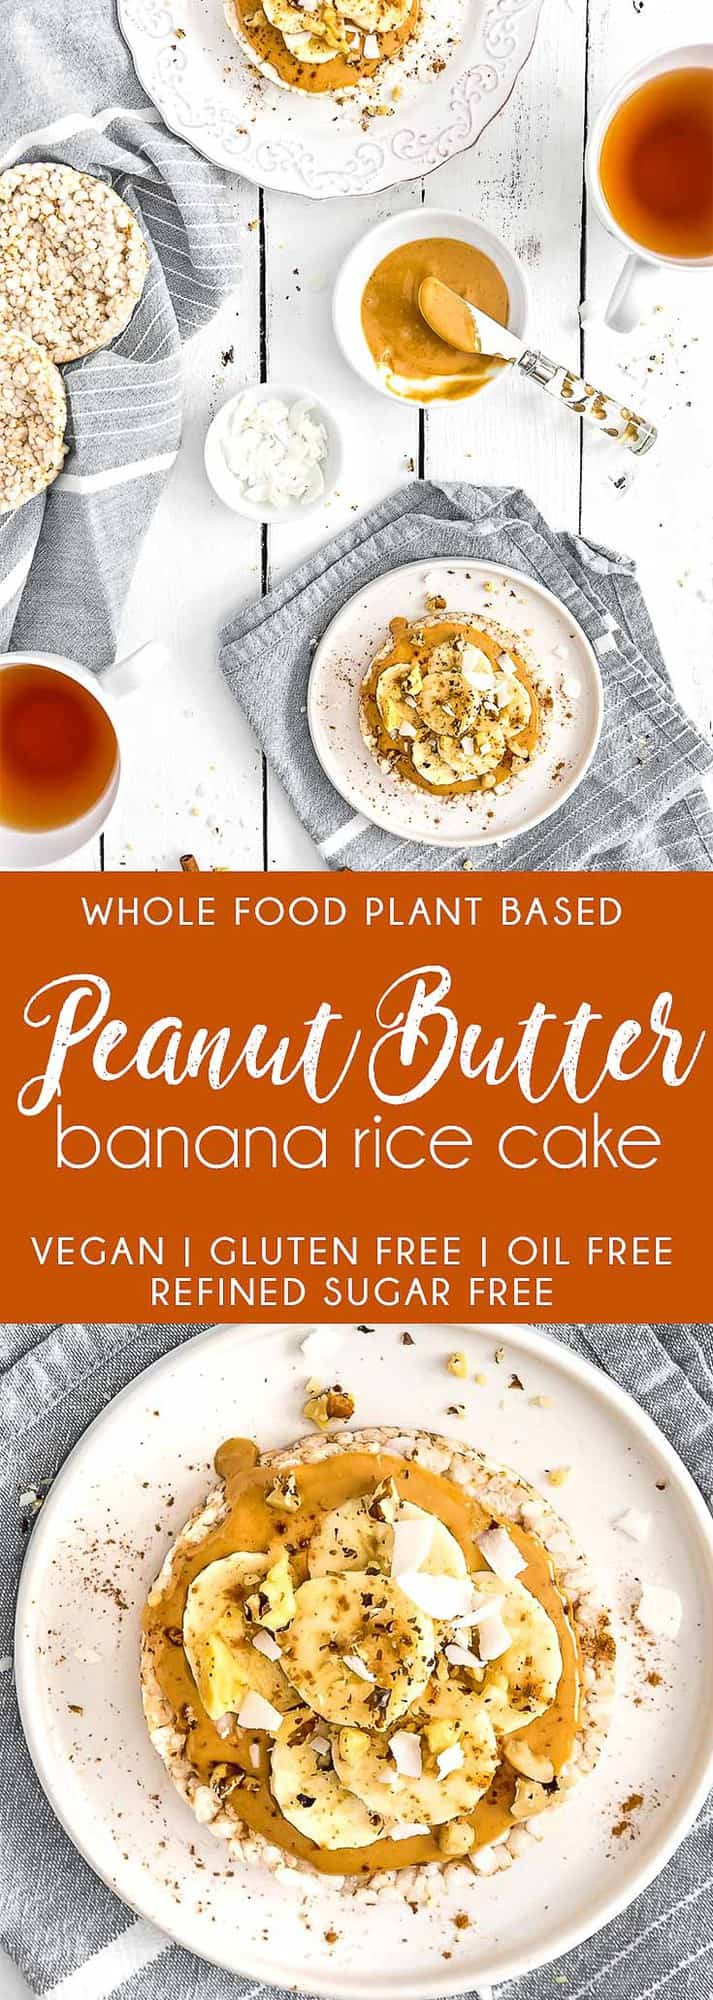 Peanut Butter Banana Rice Cake, Vegan breakfast, peanut butter banana, vegan snack, peanut butter, banana, plant based, vegan, vegetarian, whole food plant based, gluten free, recipe, wfpb, healthy, healthy vegan, oil free, no refined sugar, no oil, refined sugar free, dairy free, dairy, breakfast, snack, fast breakfast, healthy recipe, fast snack, quick breakfast, quick snack